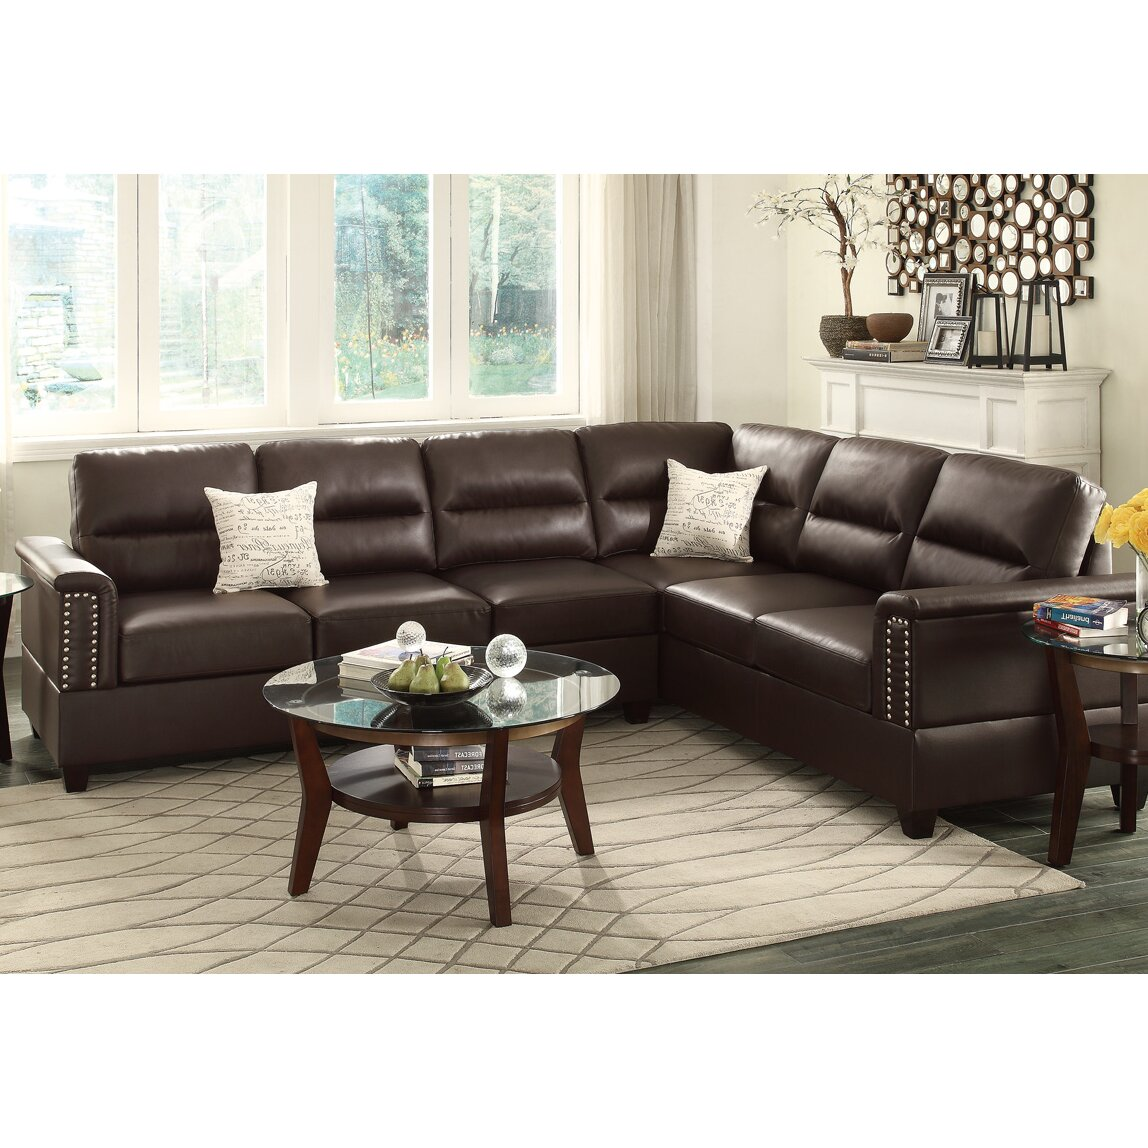 balen bobkona pc set sectional chocolate